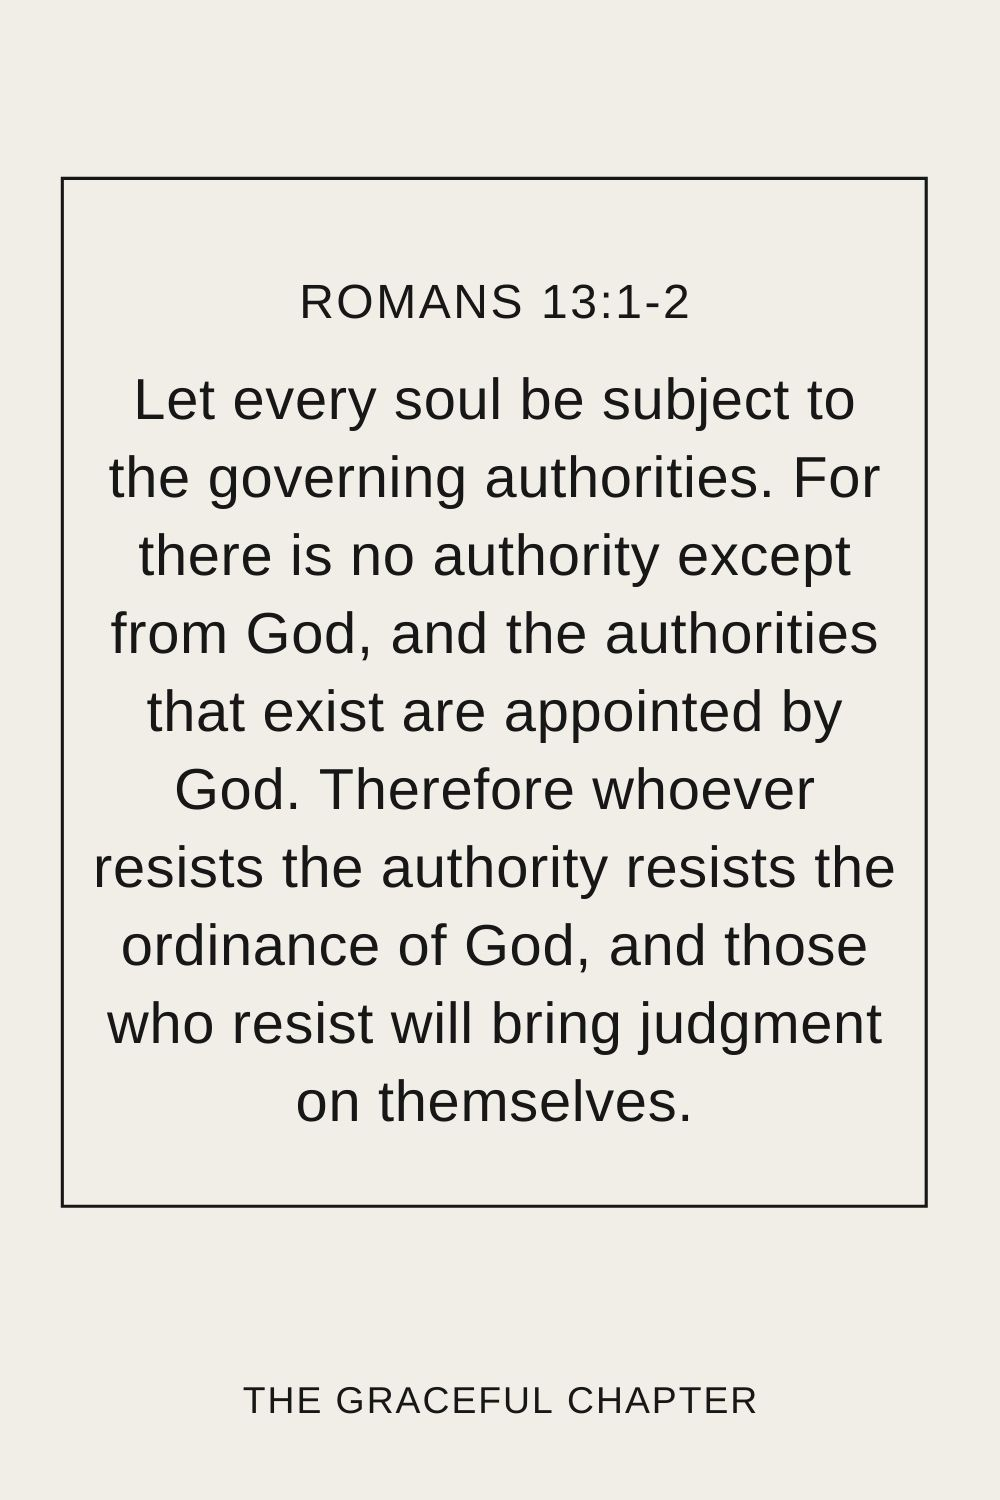 Let every soul be subject to the governing authorities. For there is no authority except from God, and the authorities that exist are appointed by God. Therefore whoever resists the authority resists the ordinance of God, and those who resist will bring judgment on themselves. Romans 13:1-2